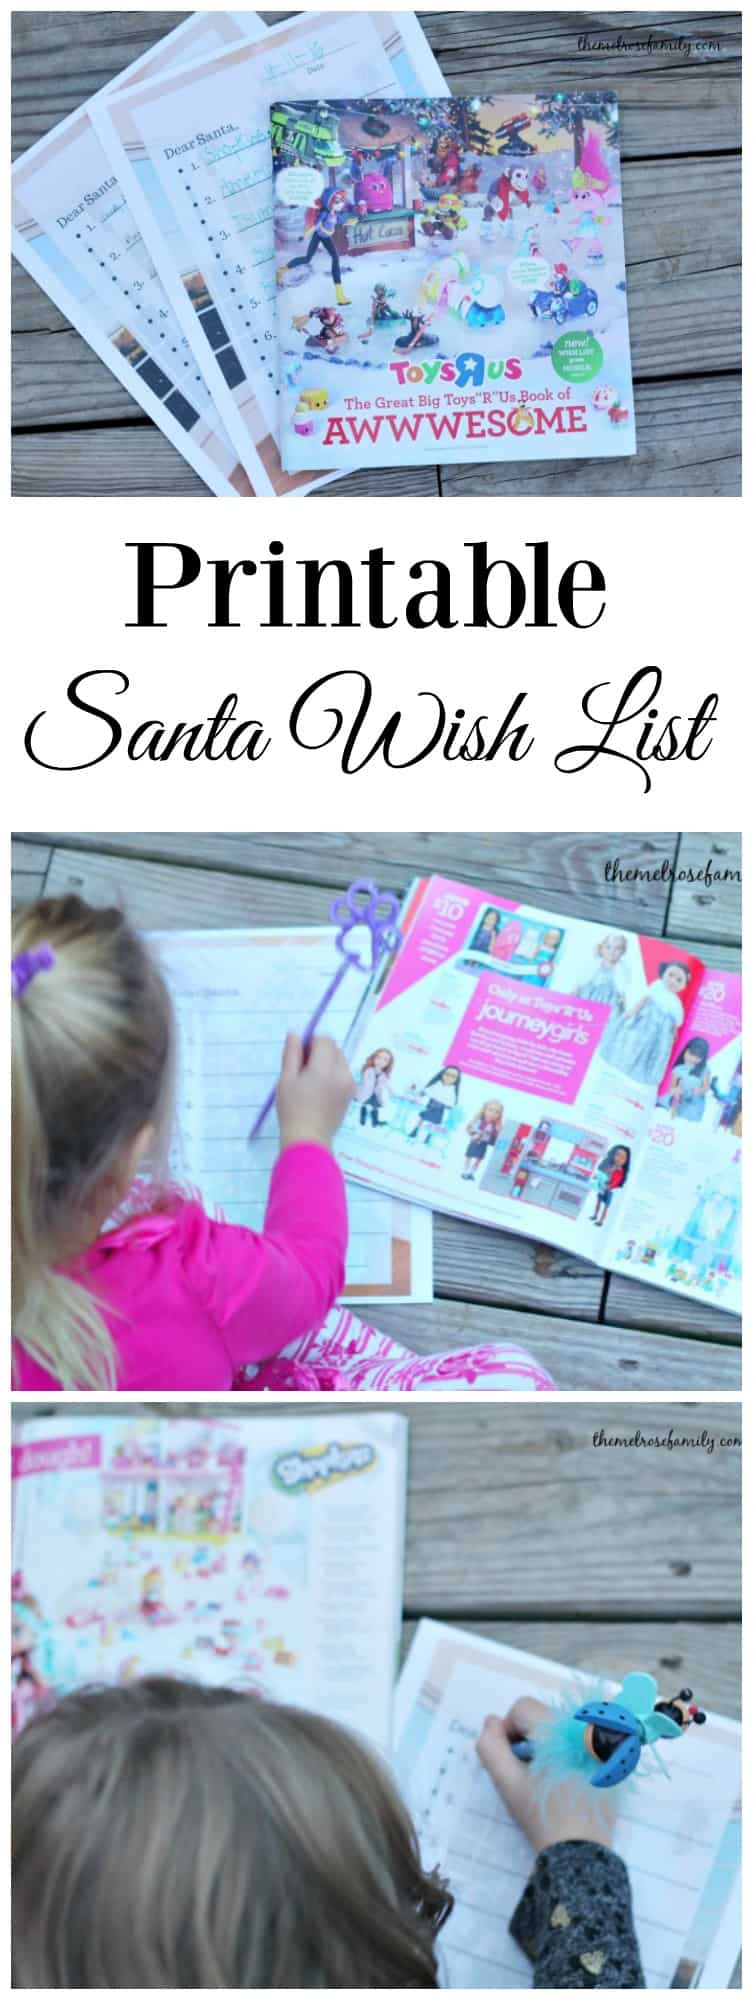 Ready for Christmas? Grab your @toysrus Big Book & print out our Printable Santa Wish List. #ad